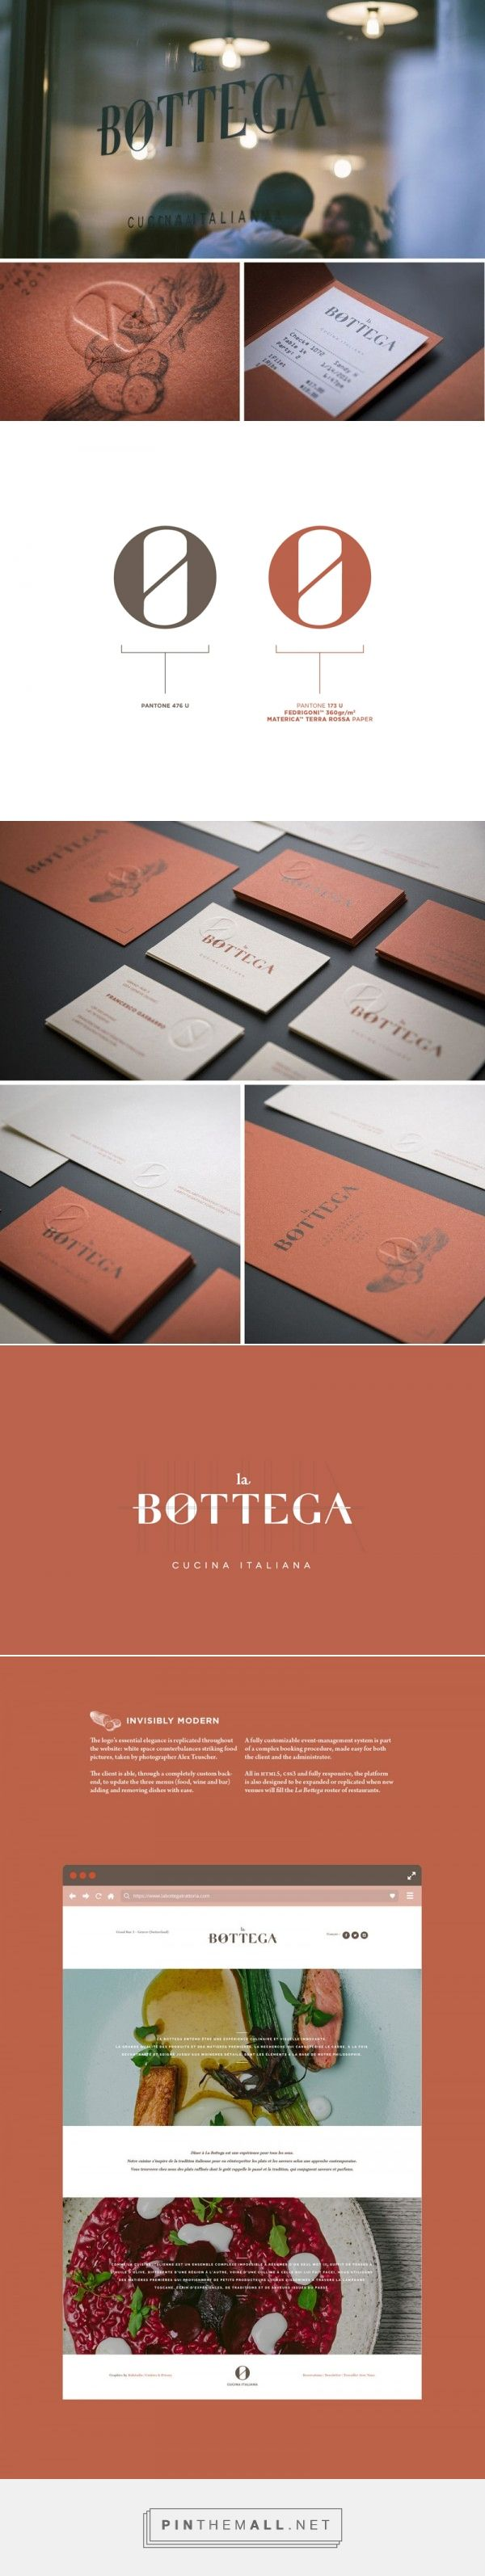 La Bottega – Restaurant Identity Design by kidstudio